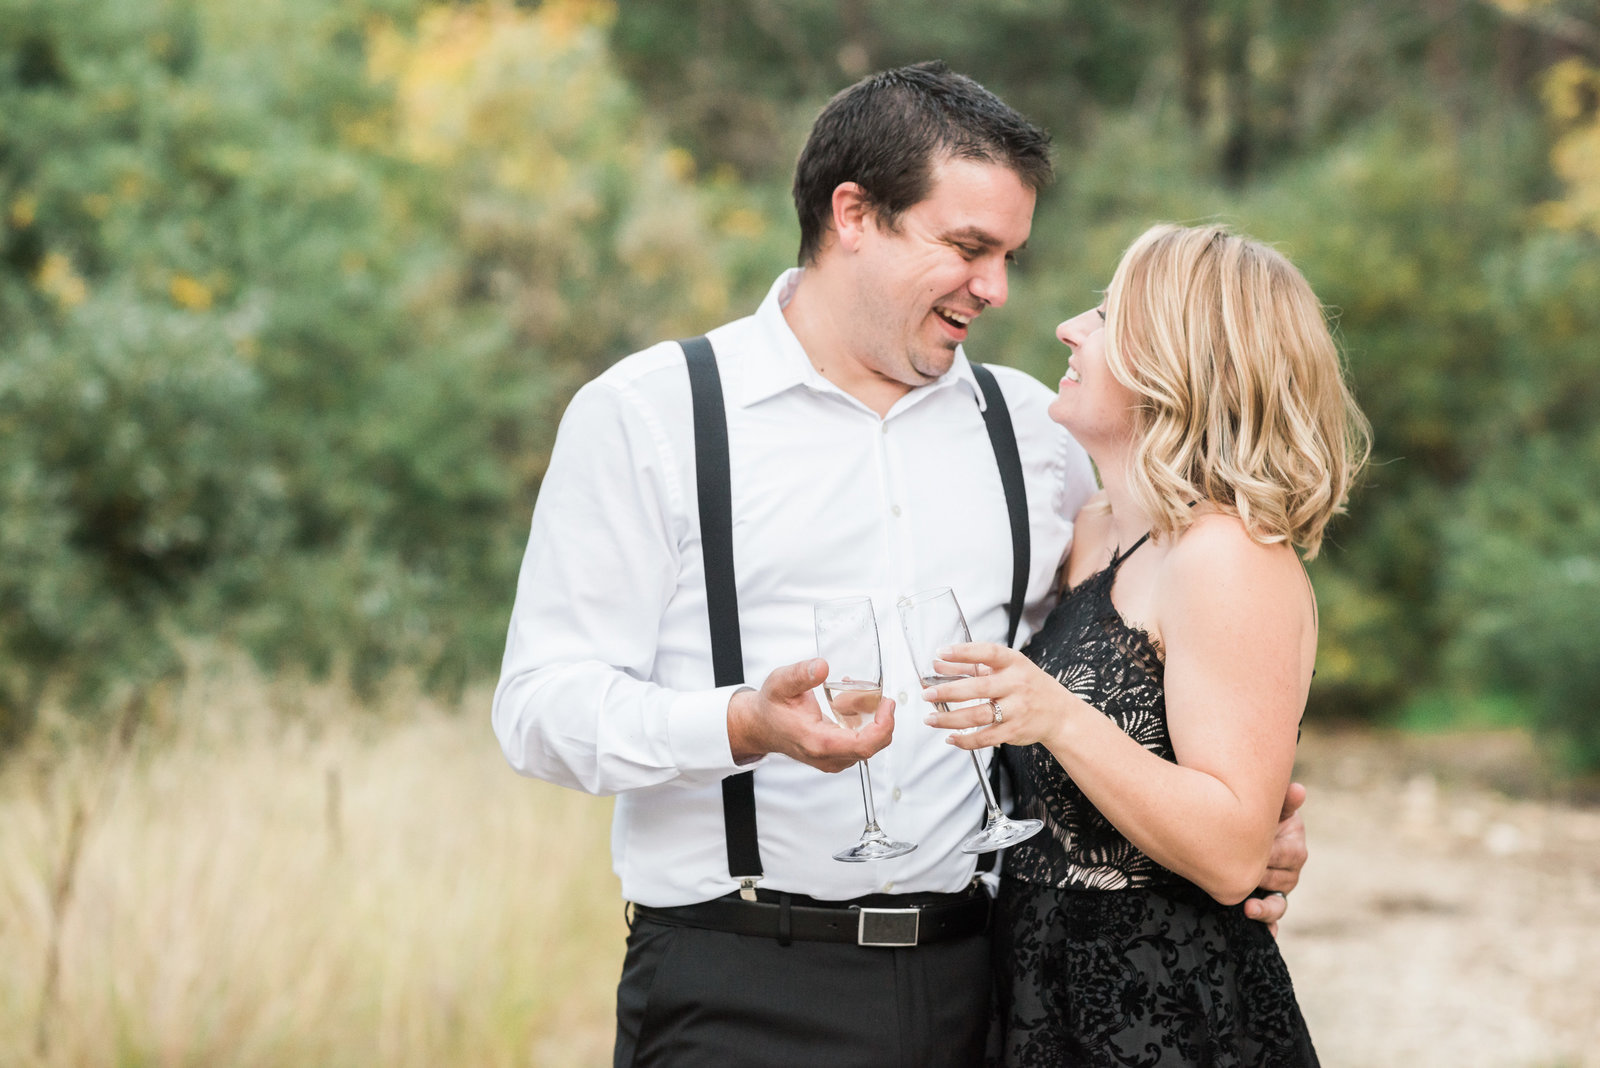 Mt Lemmon Classy and Stylish Engagement Session Photo of Engaged Couple and Champagne Glasses Toasting | Tucson Wedding Photographer | West End Photography